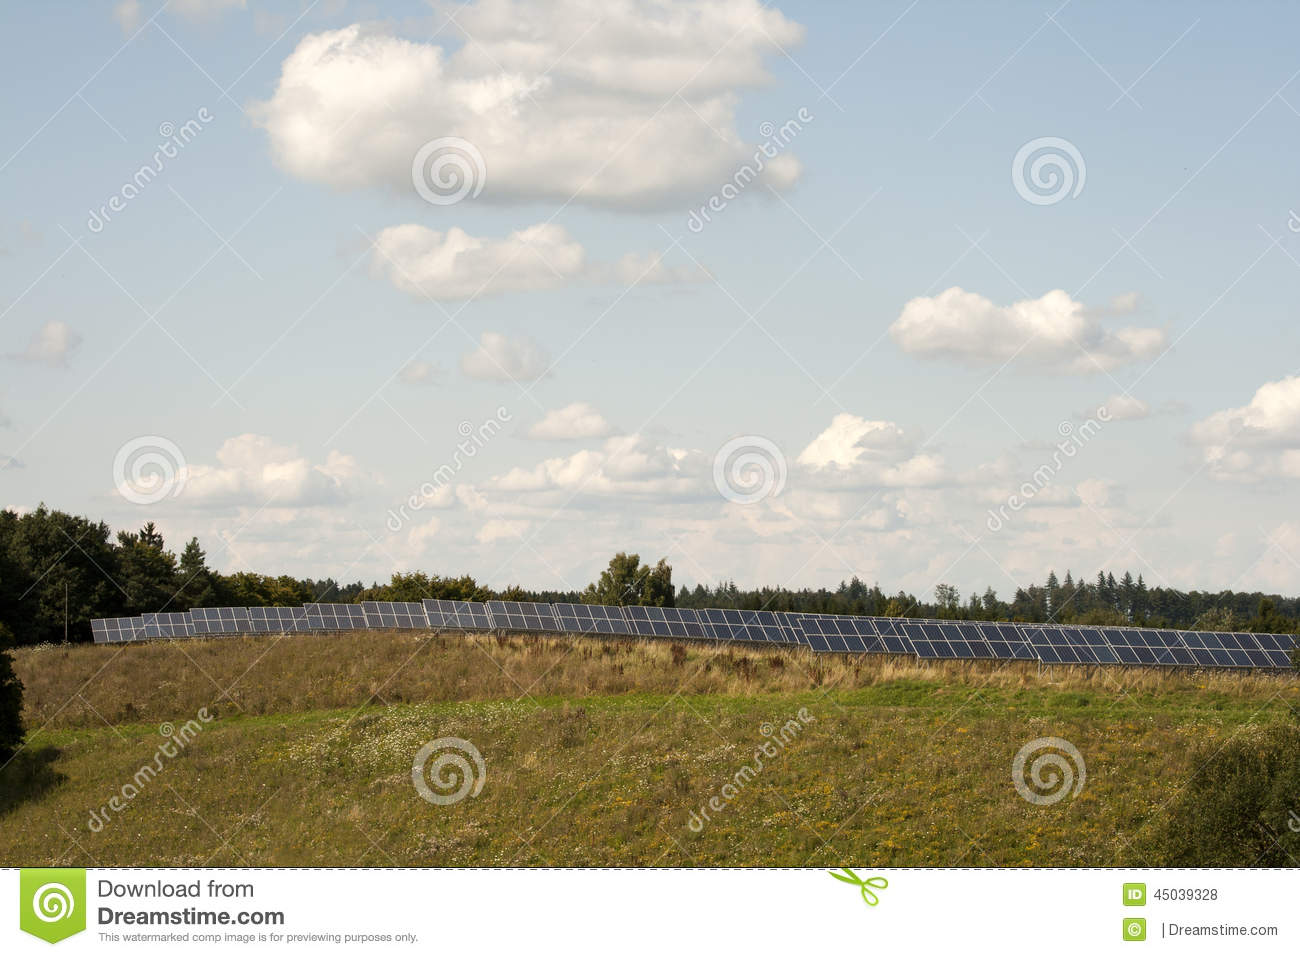 Solar cells of a photovoltaic system to generate energy through solar ...